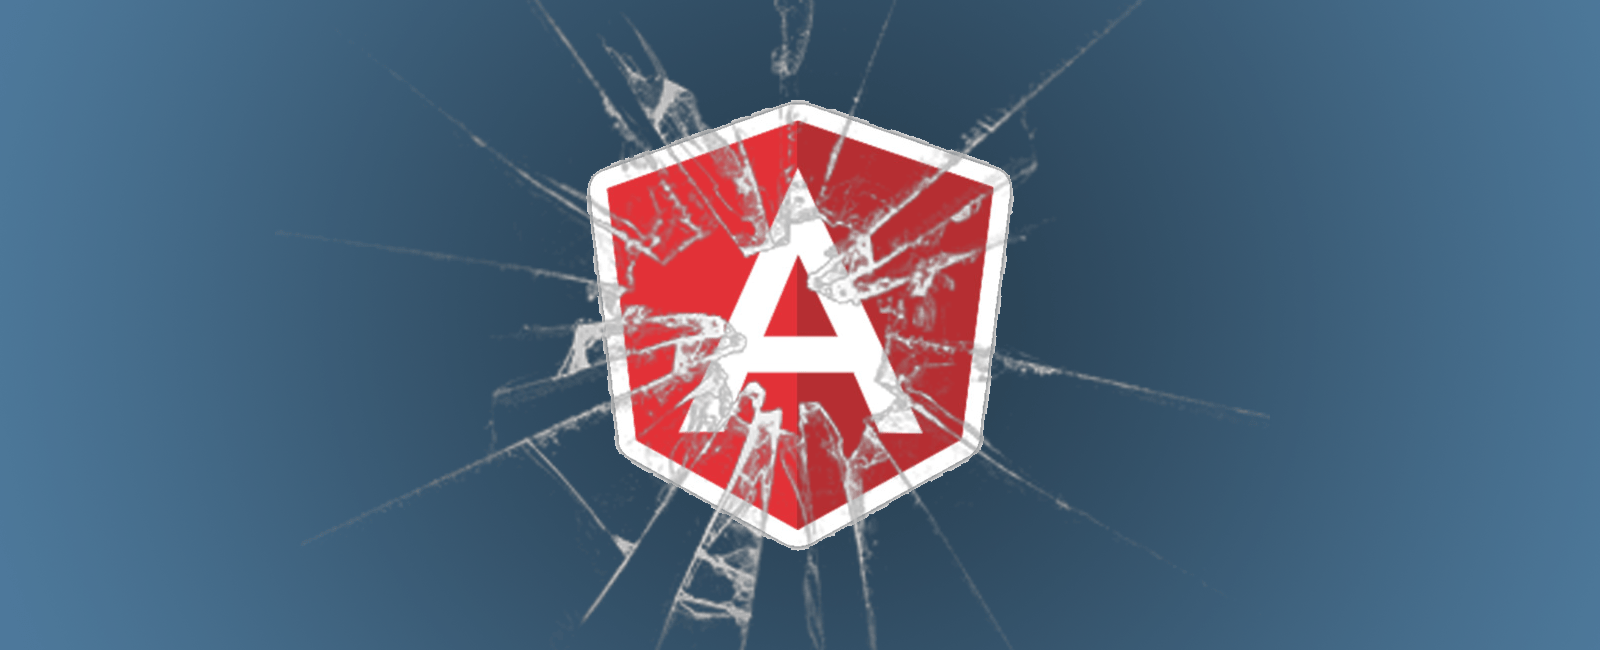 Detecting lost internet connection / offline status in Angular